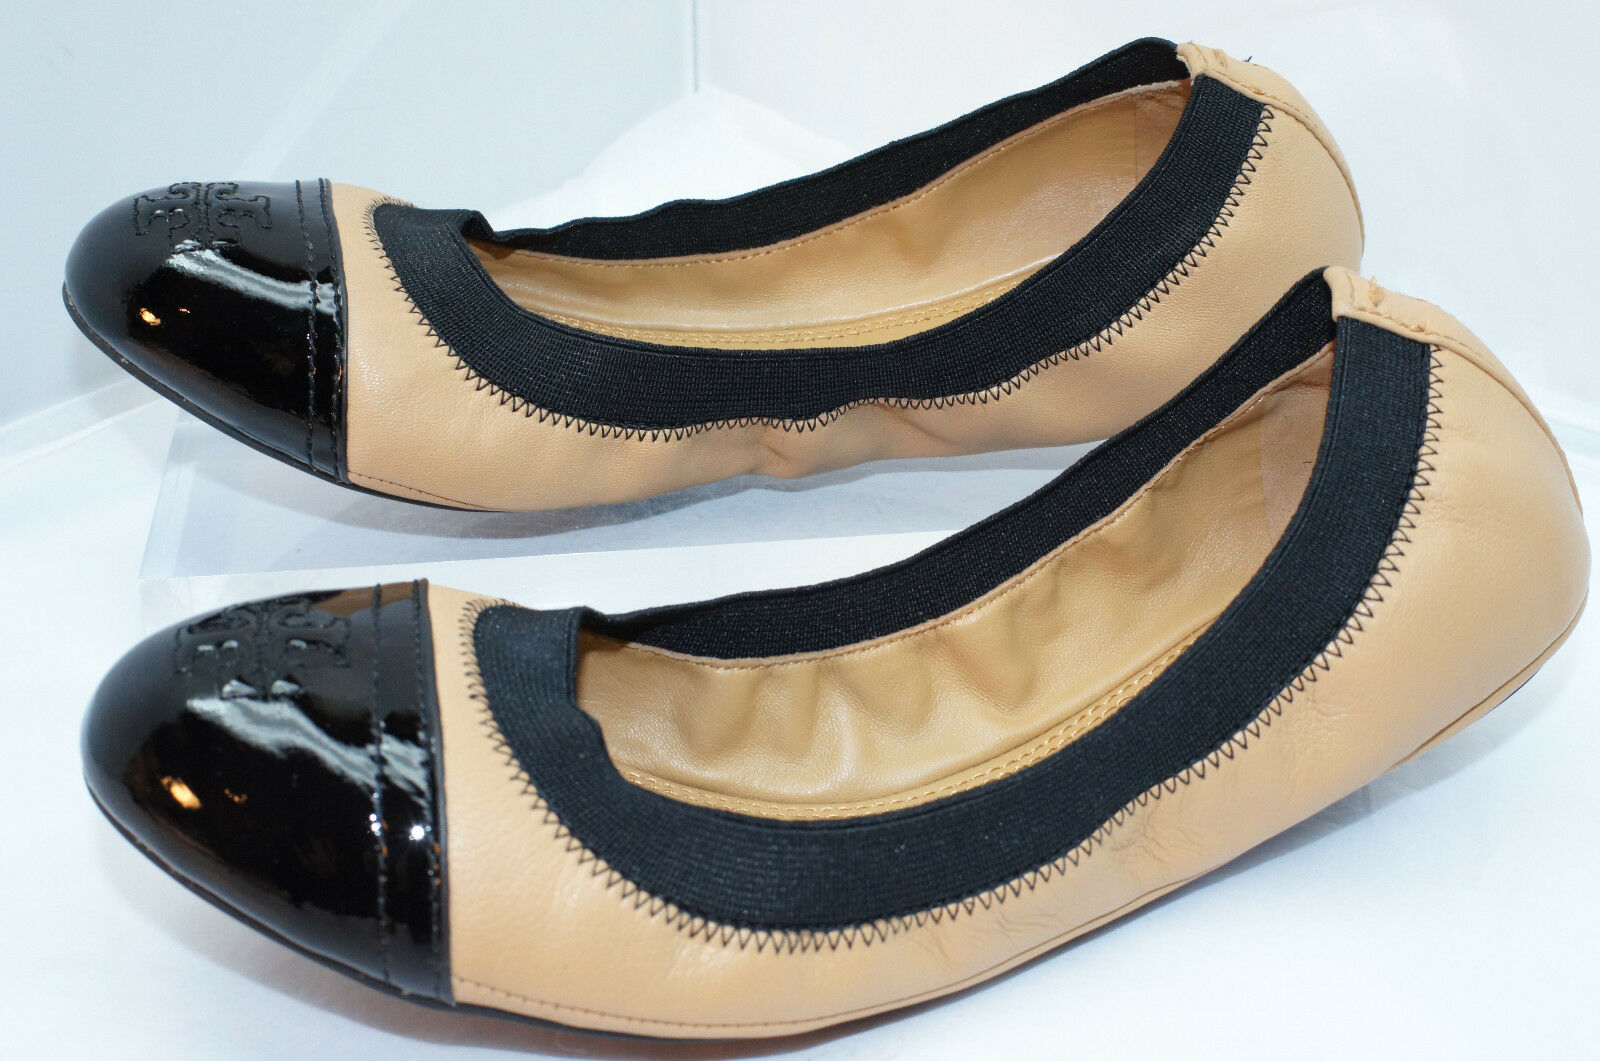 New Tory Burch Gabby shoes shoes shoes Flats Ballet Size 6.5 Black Mushroom Leather e529b8